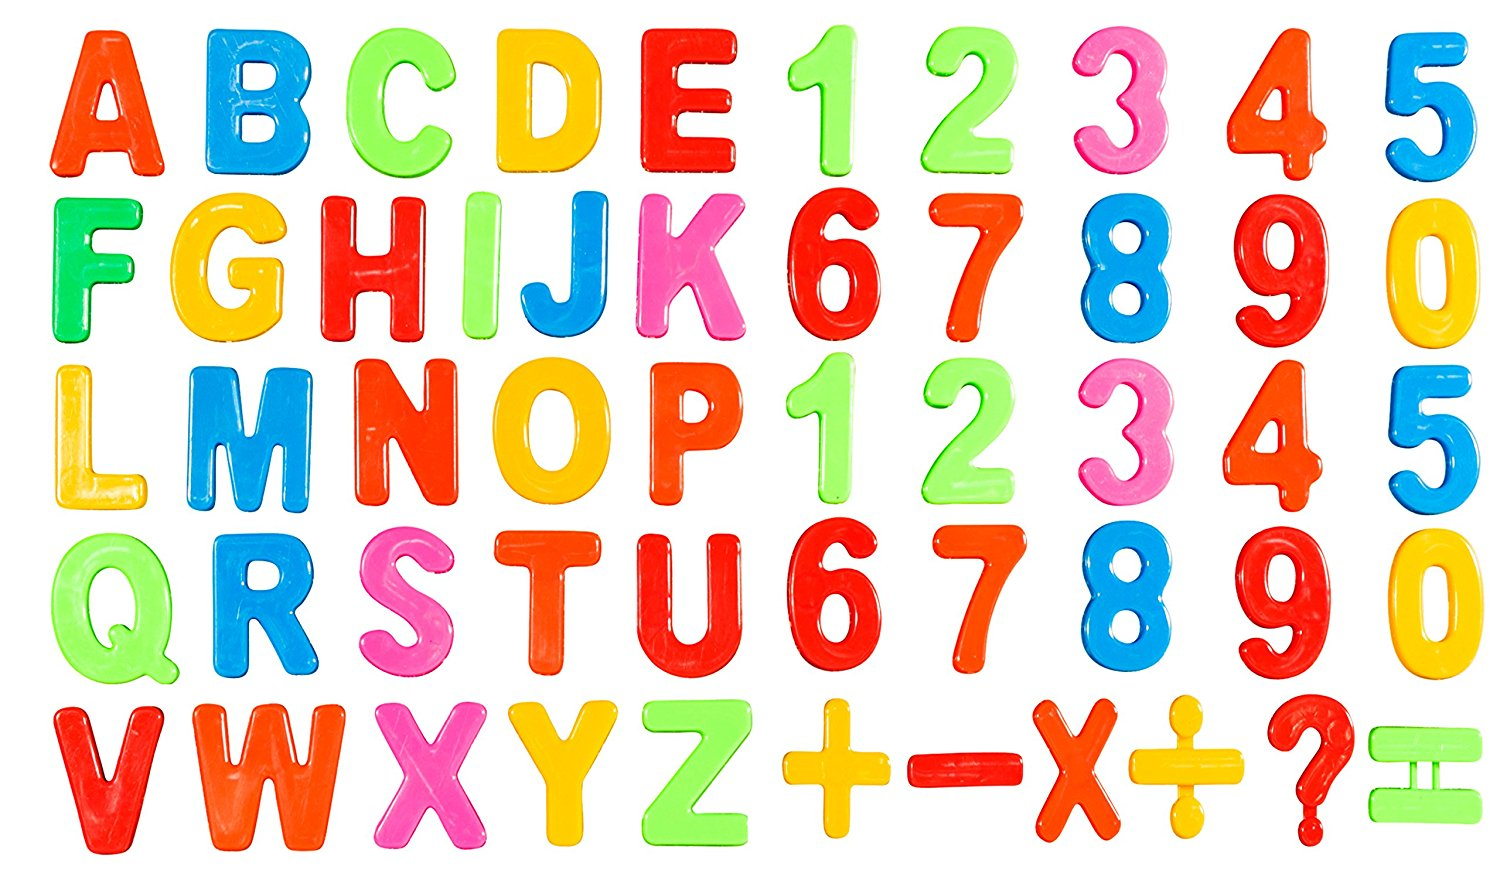 Buy Magnetic Letters And Numbers Refrigerator Magnets For Kitchen